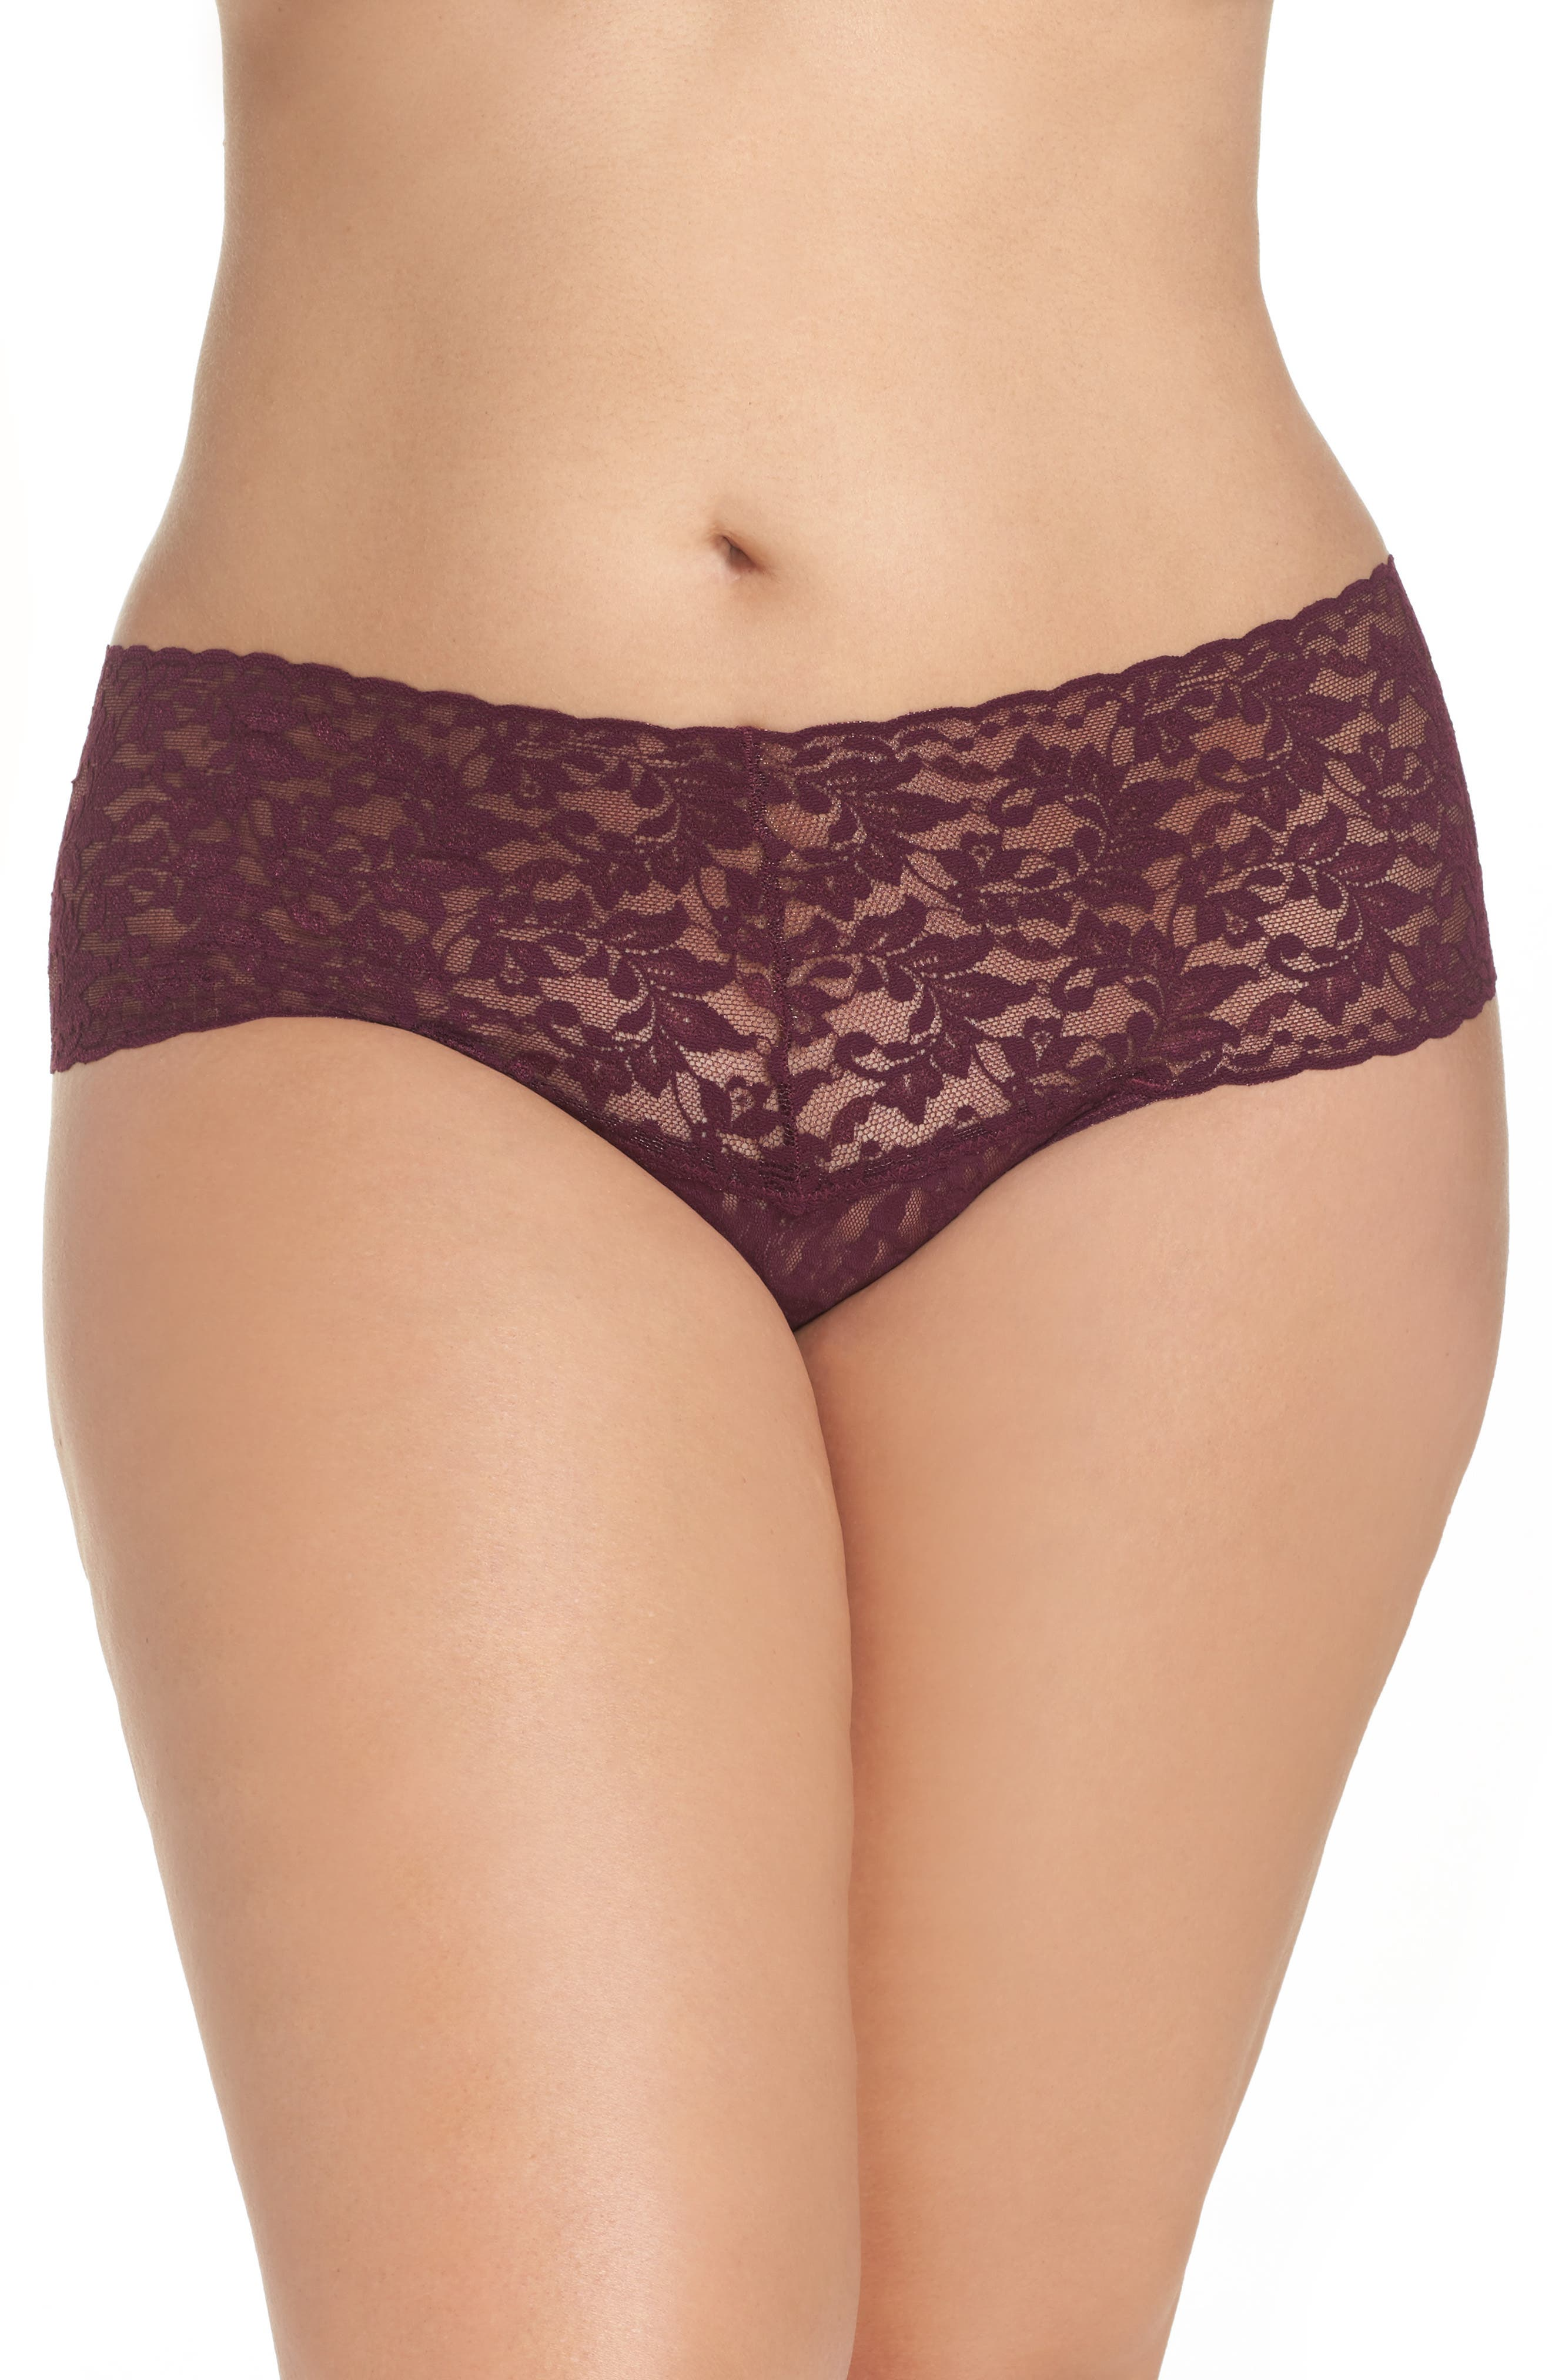 Alternate Image 1 Selected - Hanky Panky 'Retro' Thong (Plus Size)